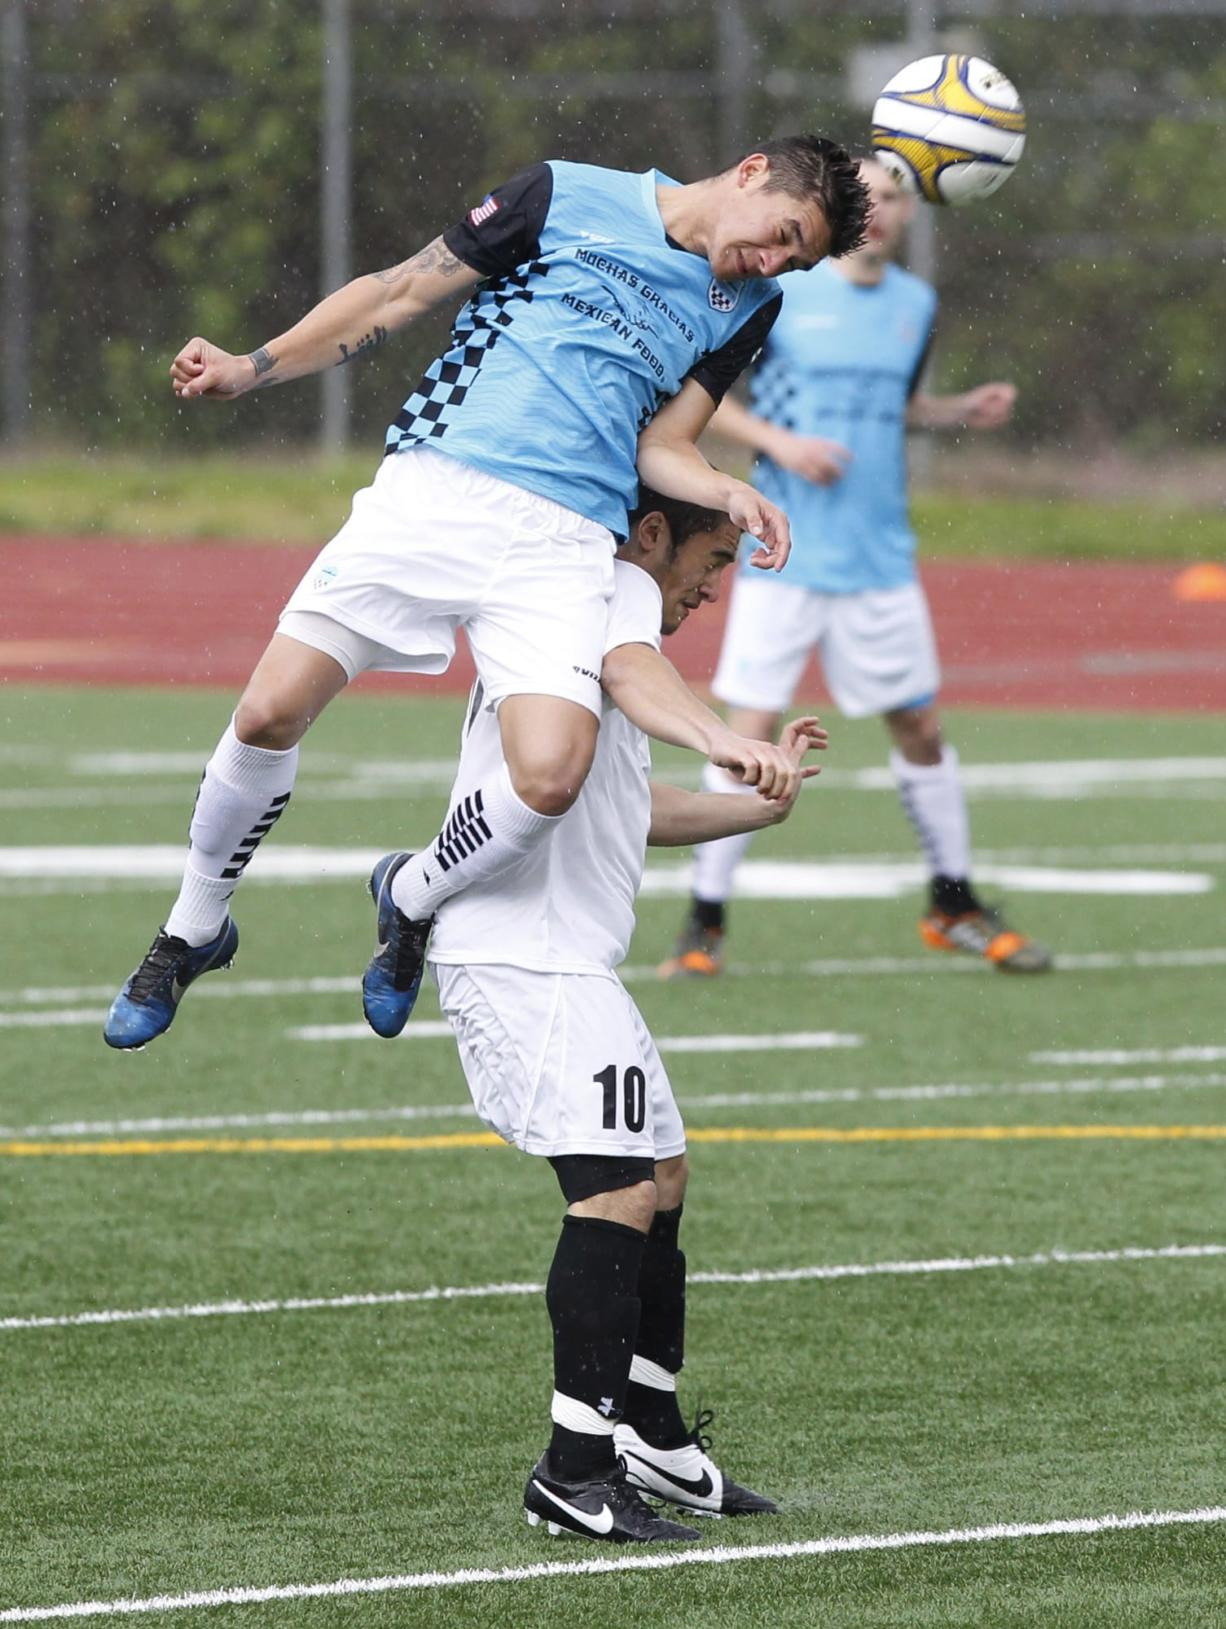 Vancouver's Bryanth Garcia-Junco heads ball over Westsound's Cameron Stone (10) during Sunday's 4-0 Vancouver victory.